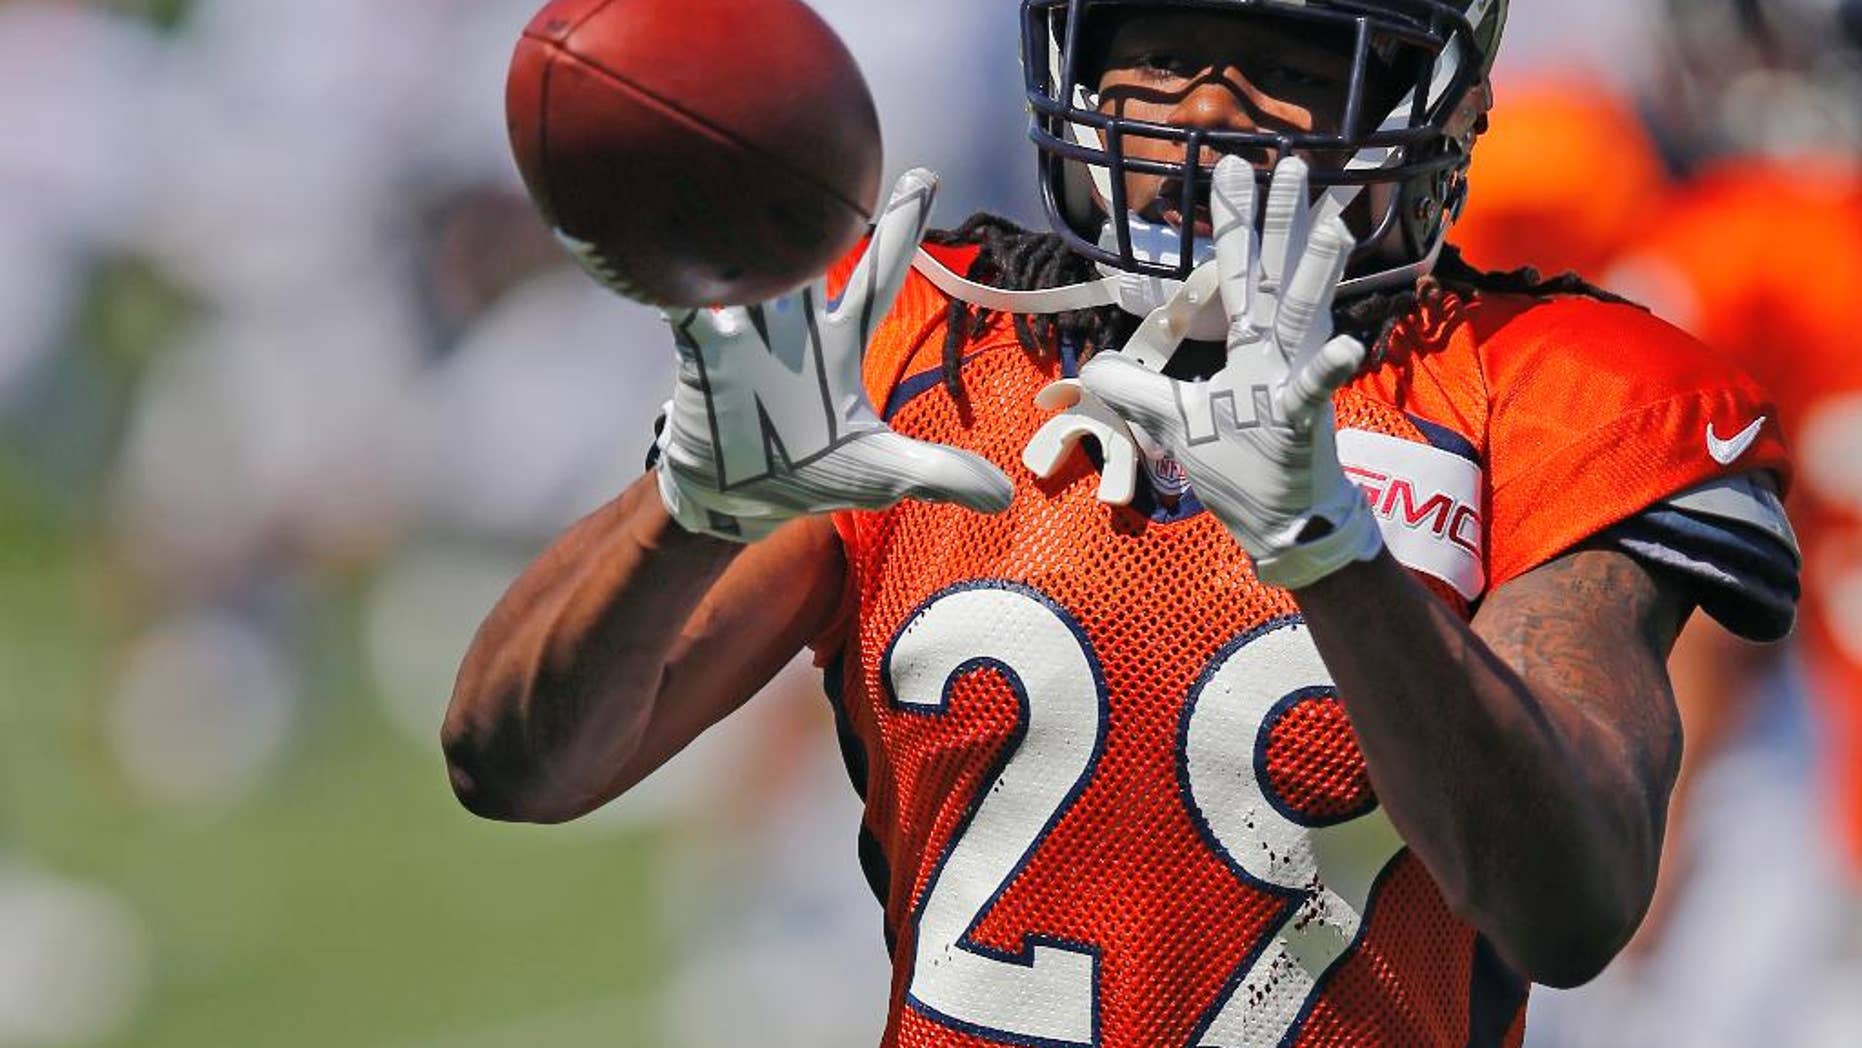 FILE - In this Thursday, Aug. 14, 2014  file photo, Denver Broncos' Bradley Roby runs a drill during NFL football training camp  in Englewood, Colo. (AP Photo/Jack Dempsey, File)